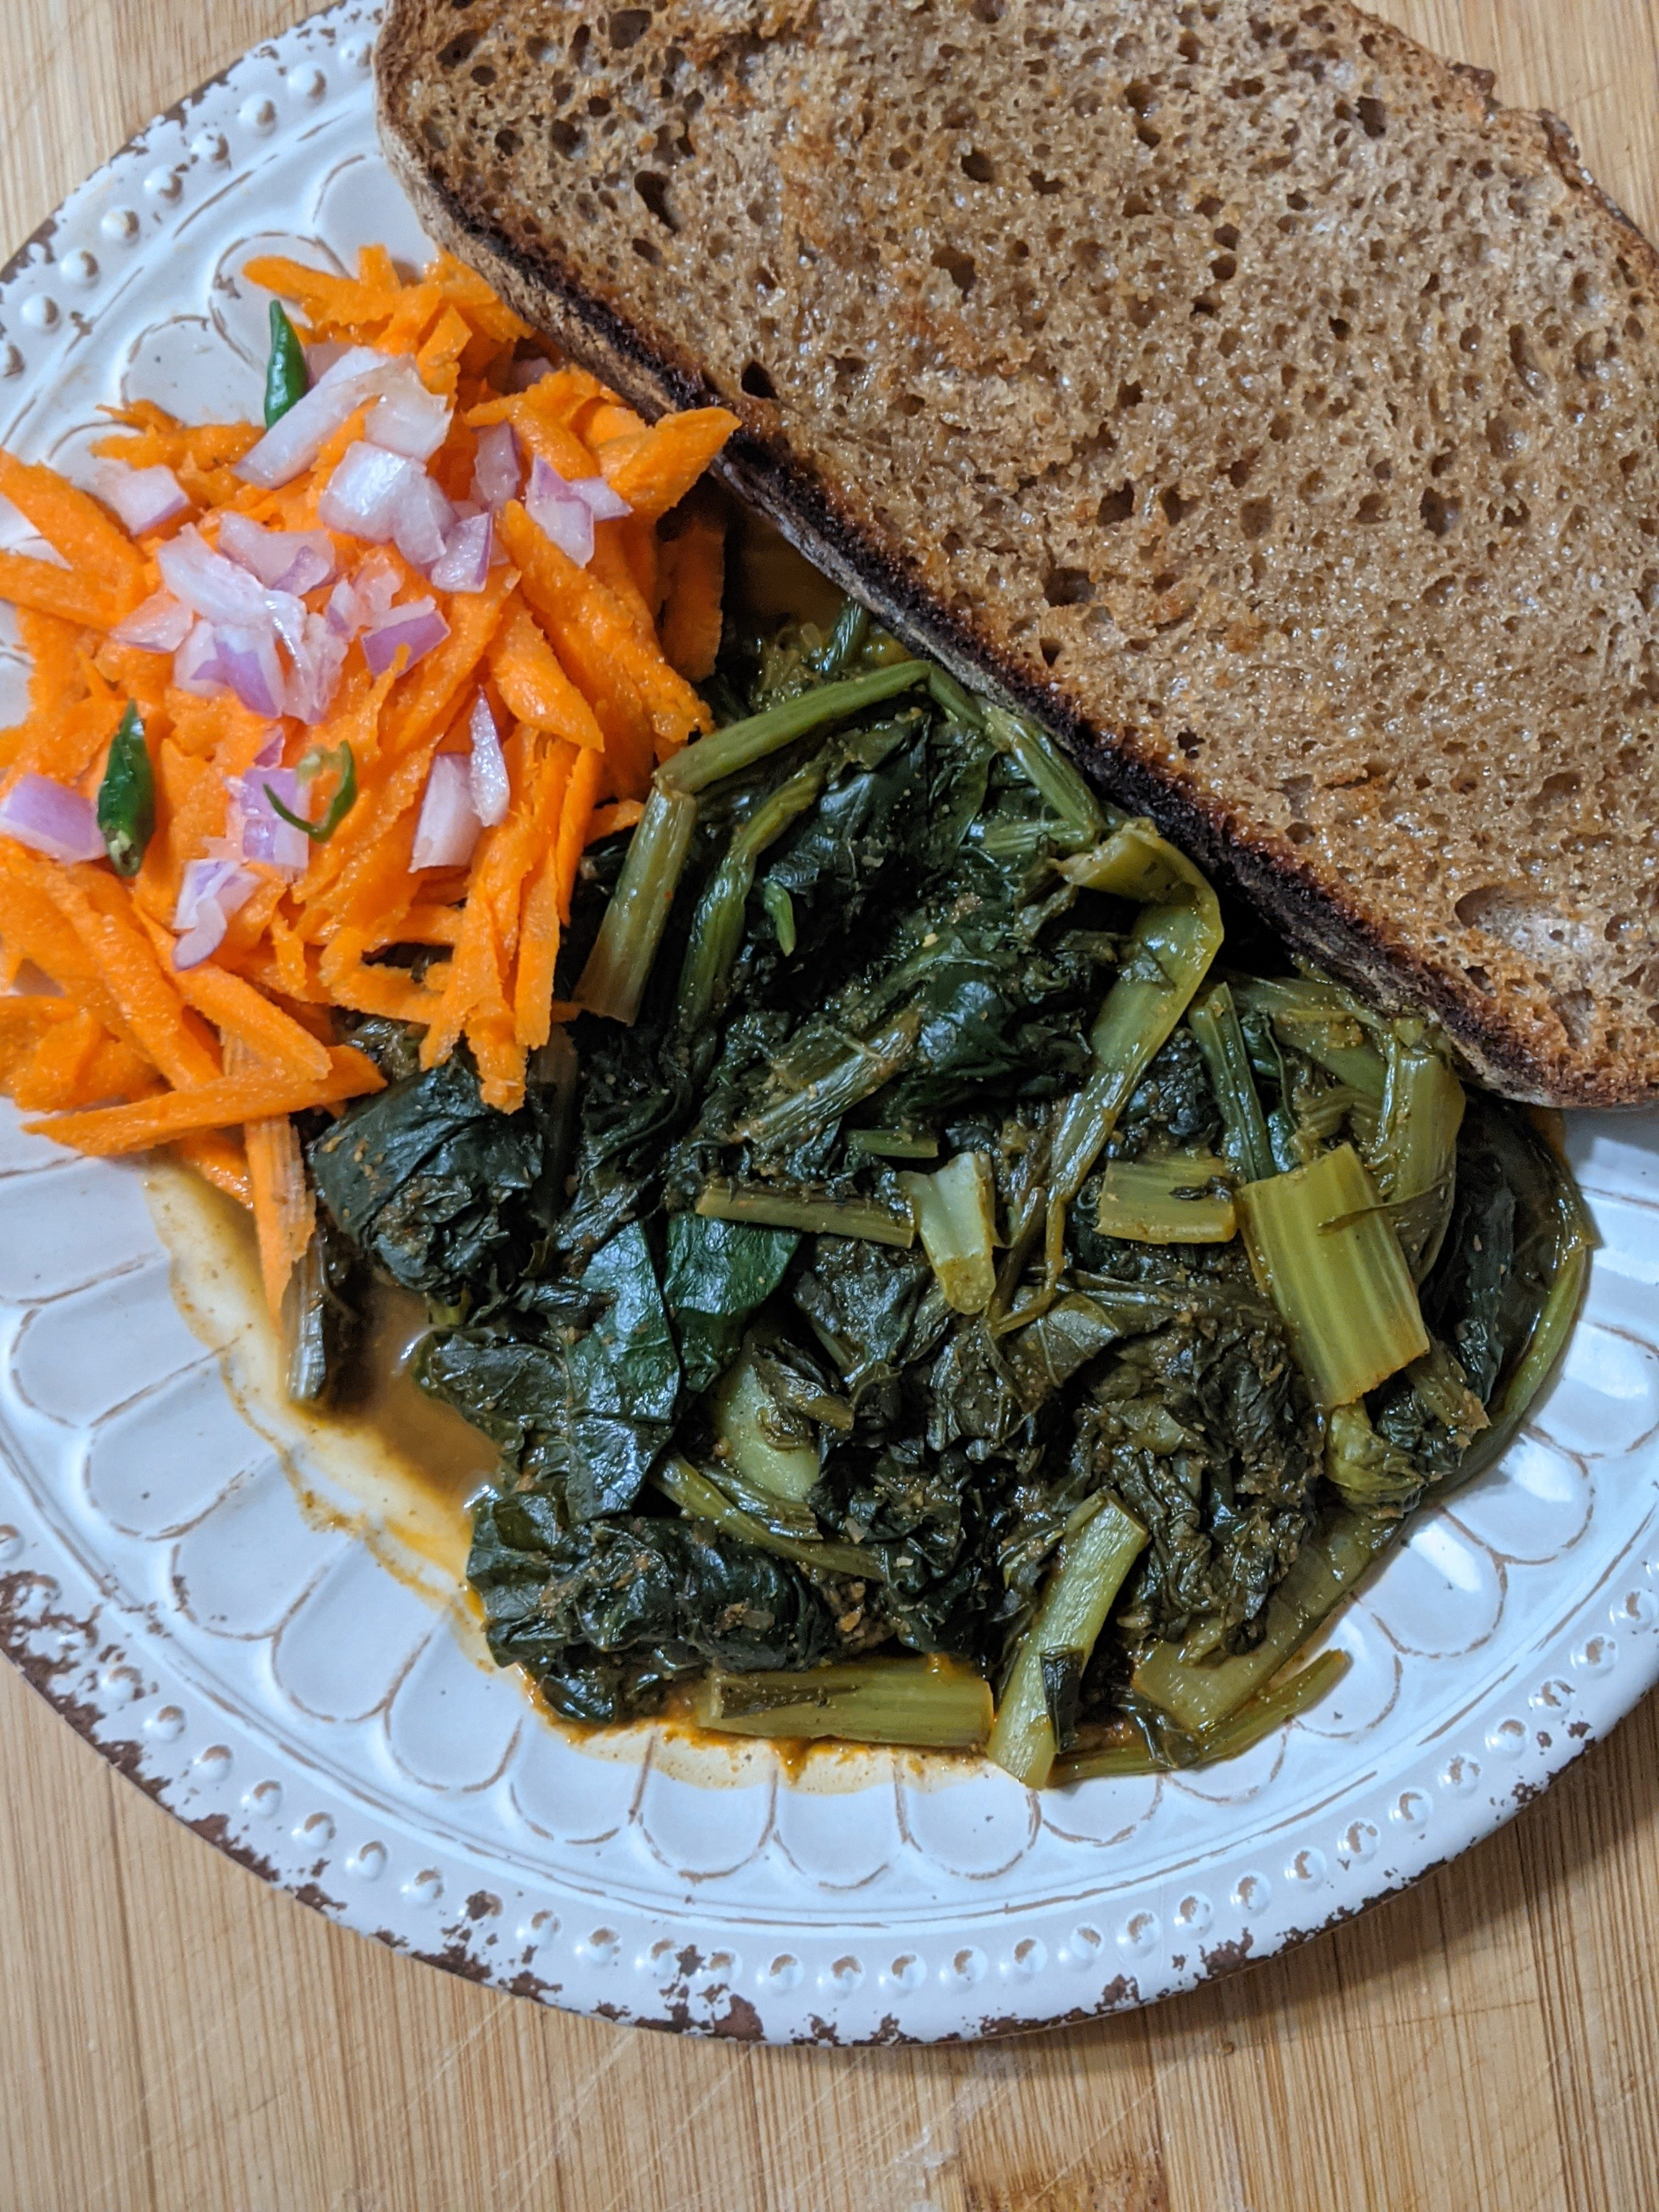 Image of Dandelion Curry served with bread